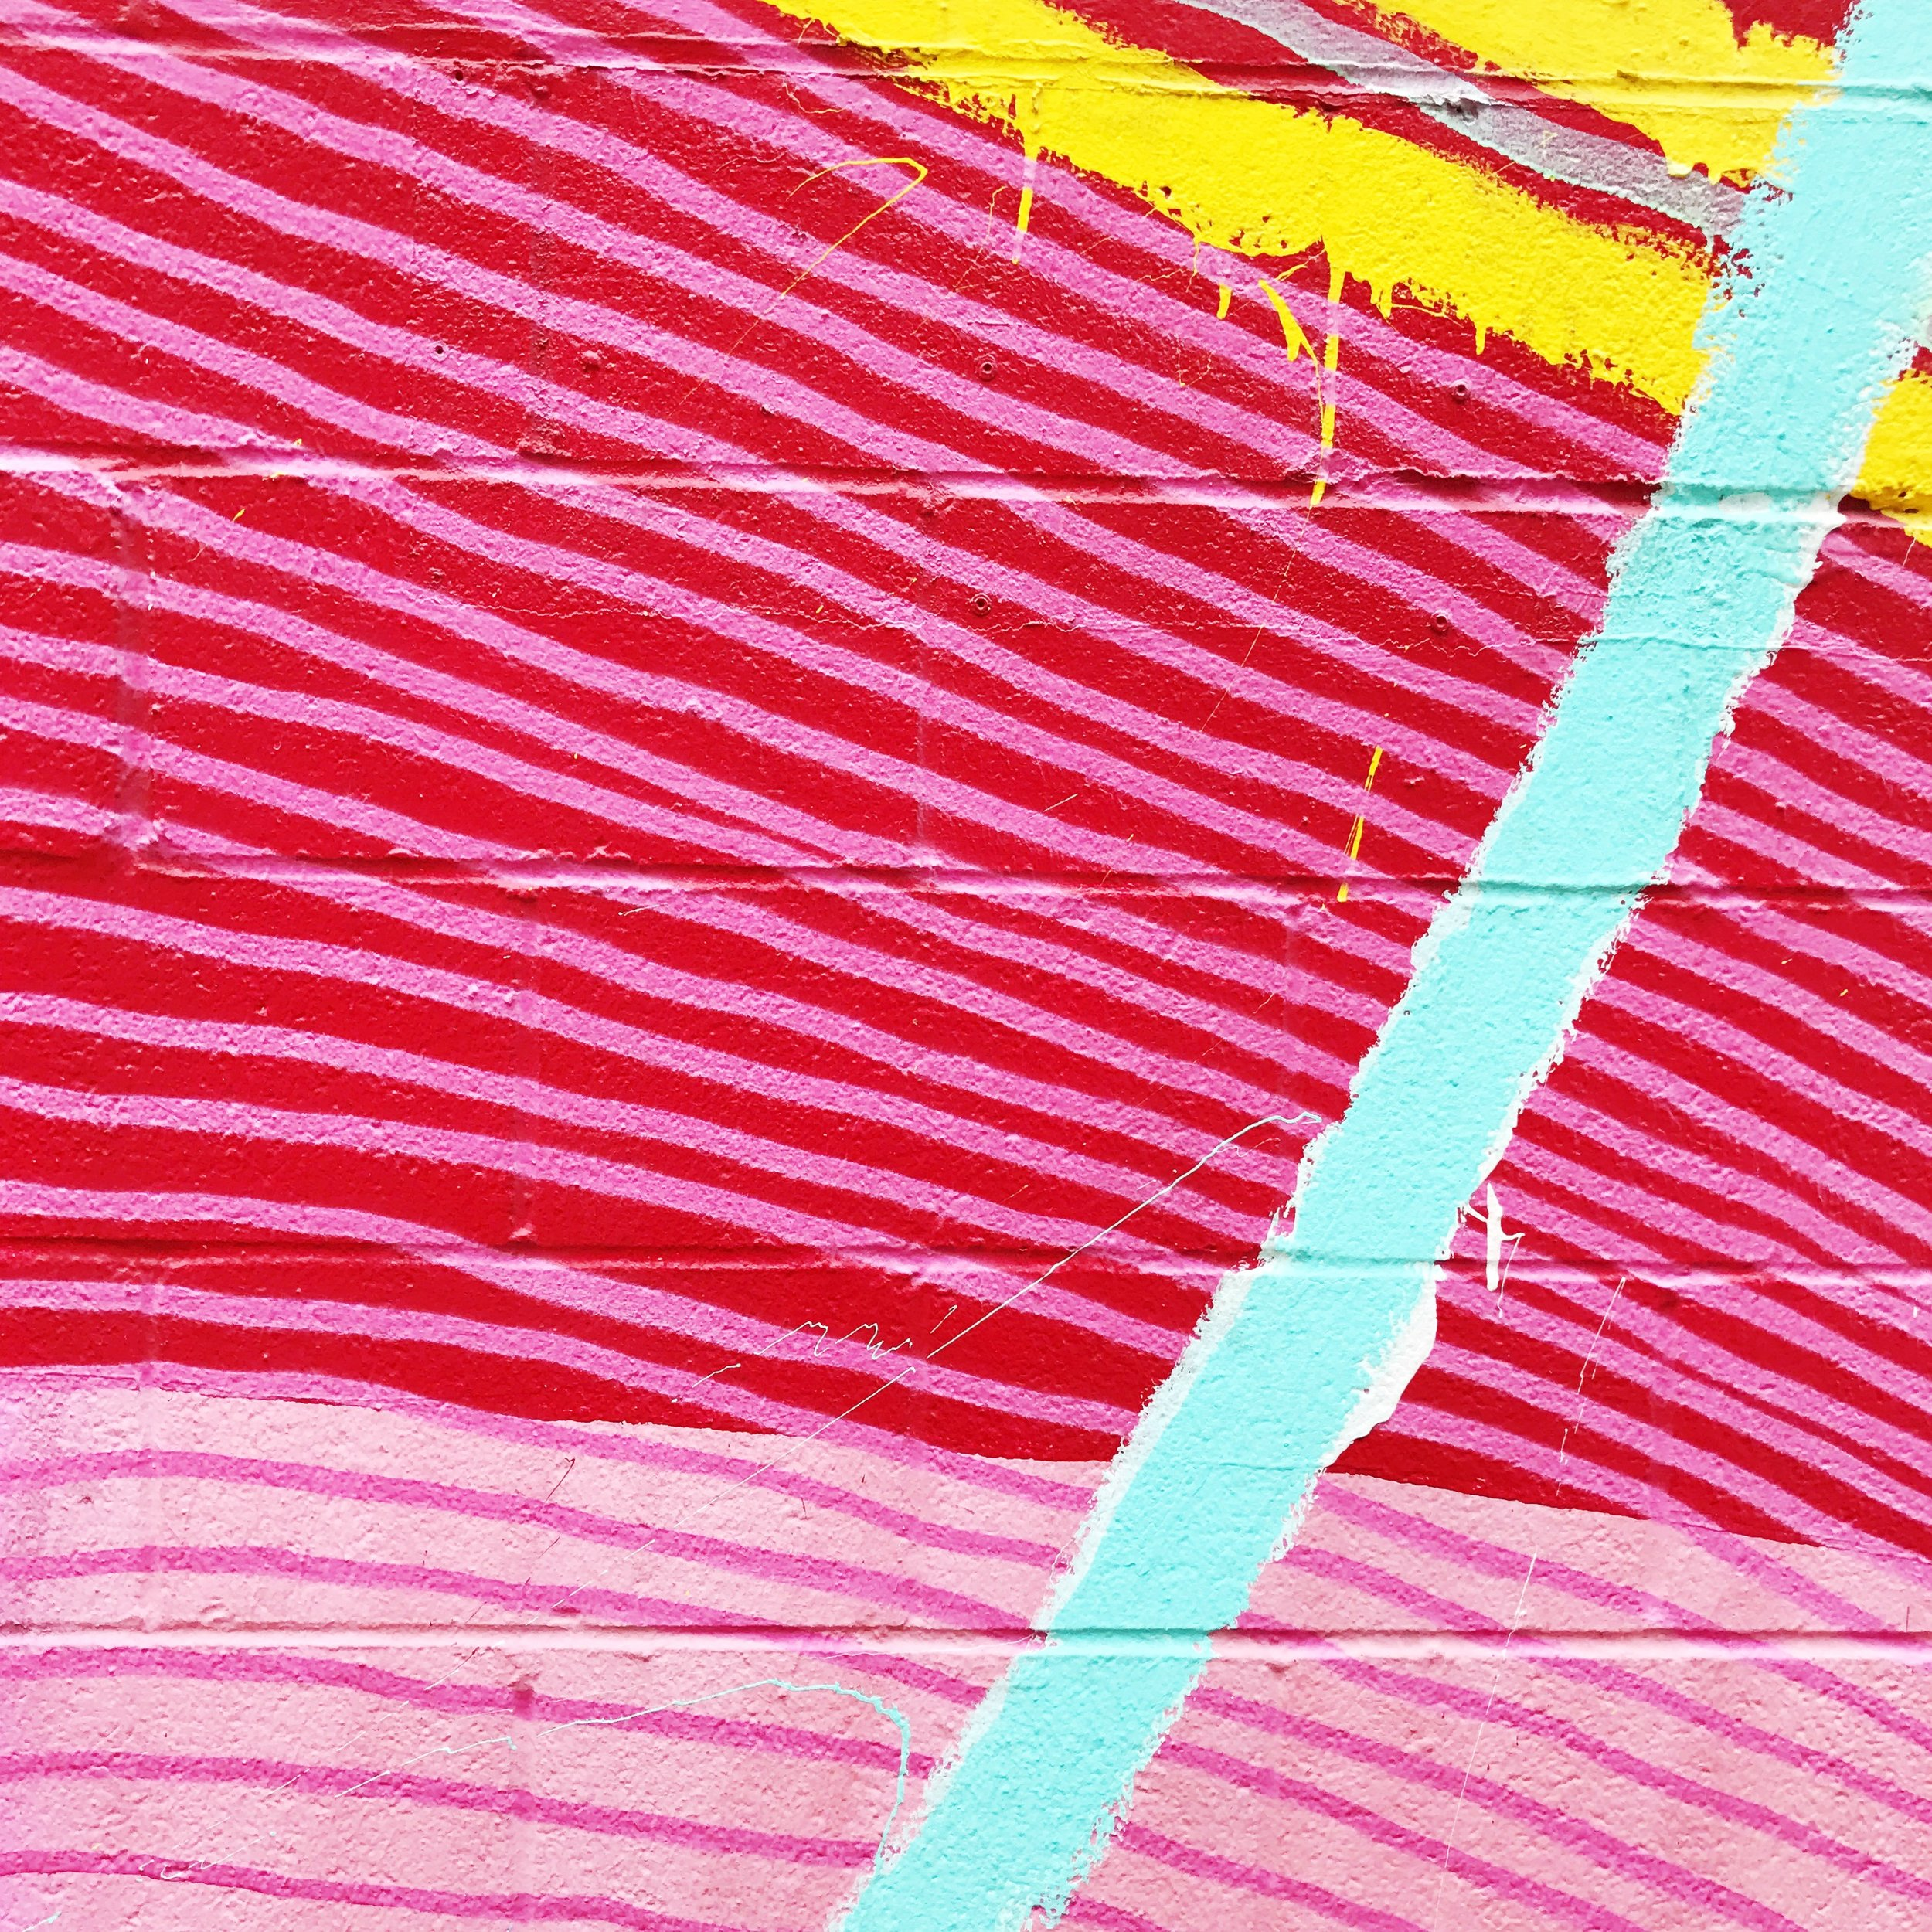 brightpinkredabstract